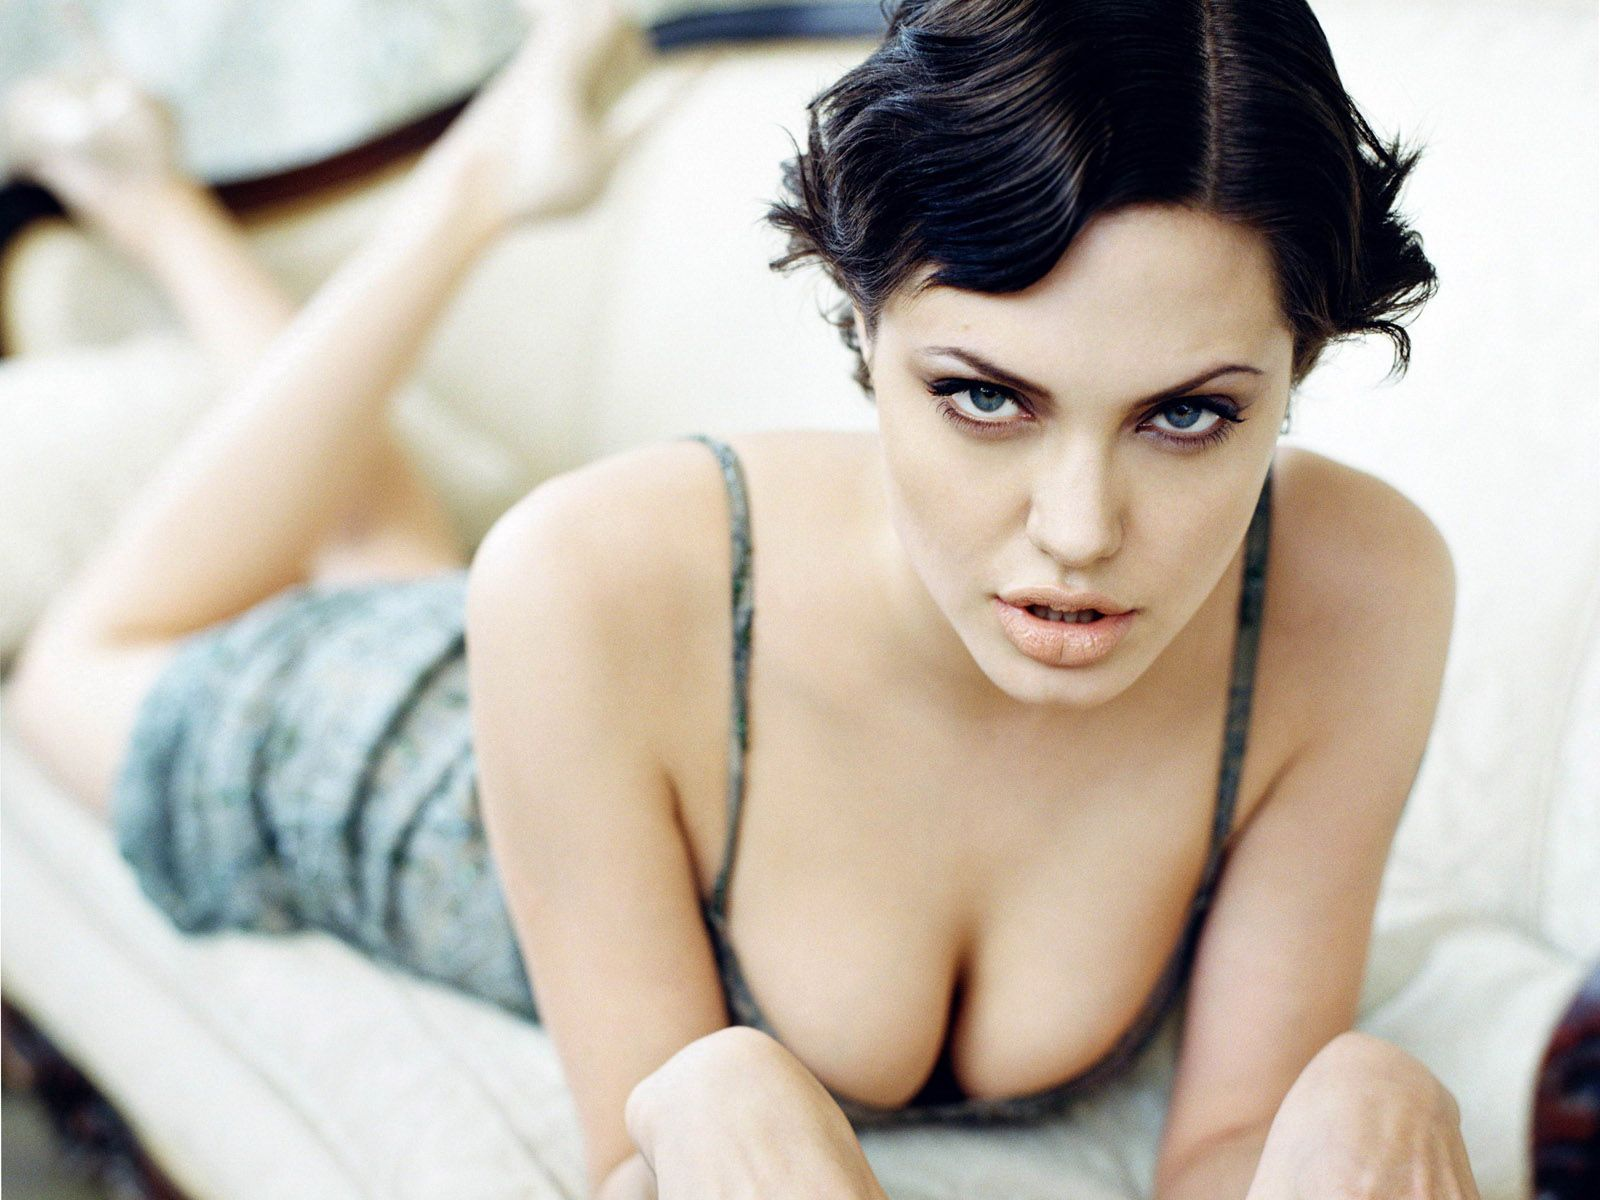 Angelina Jolie Hot Stills pinjessica brian on hot celebrity pictures | angelina